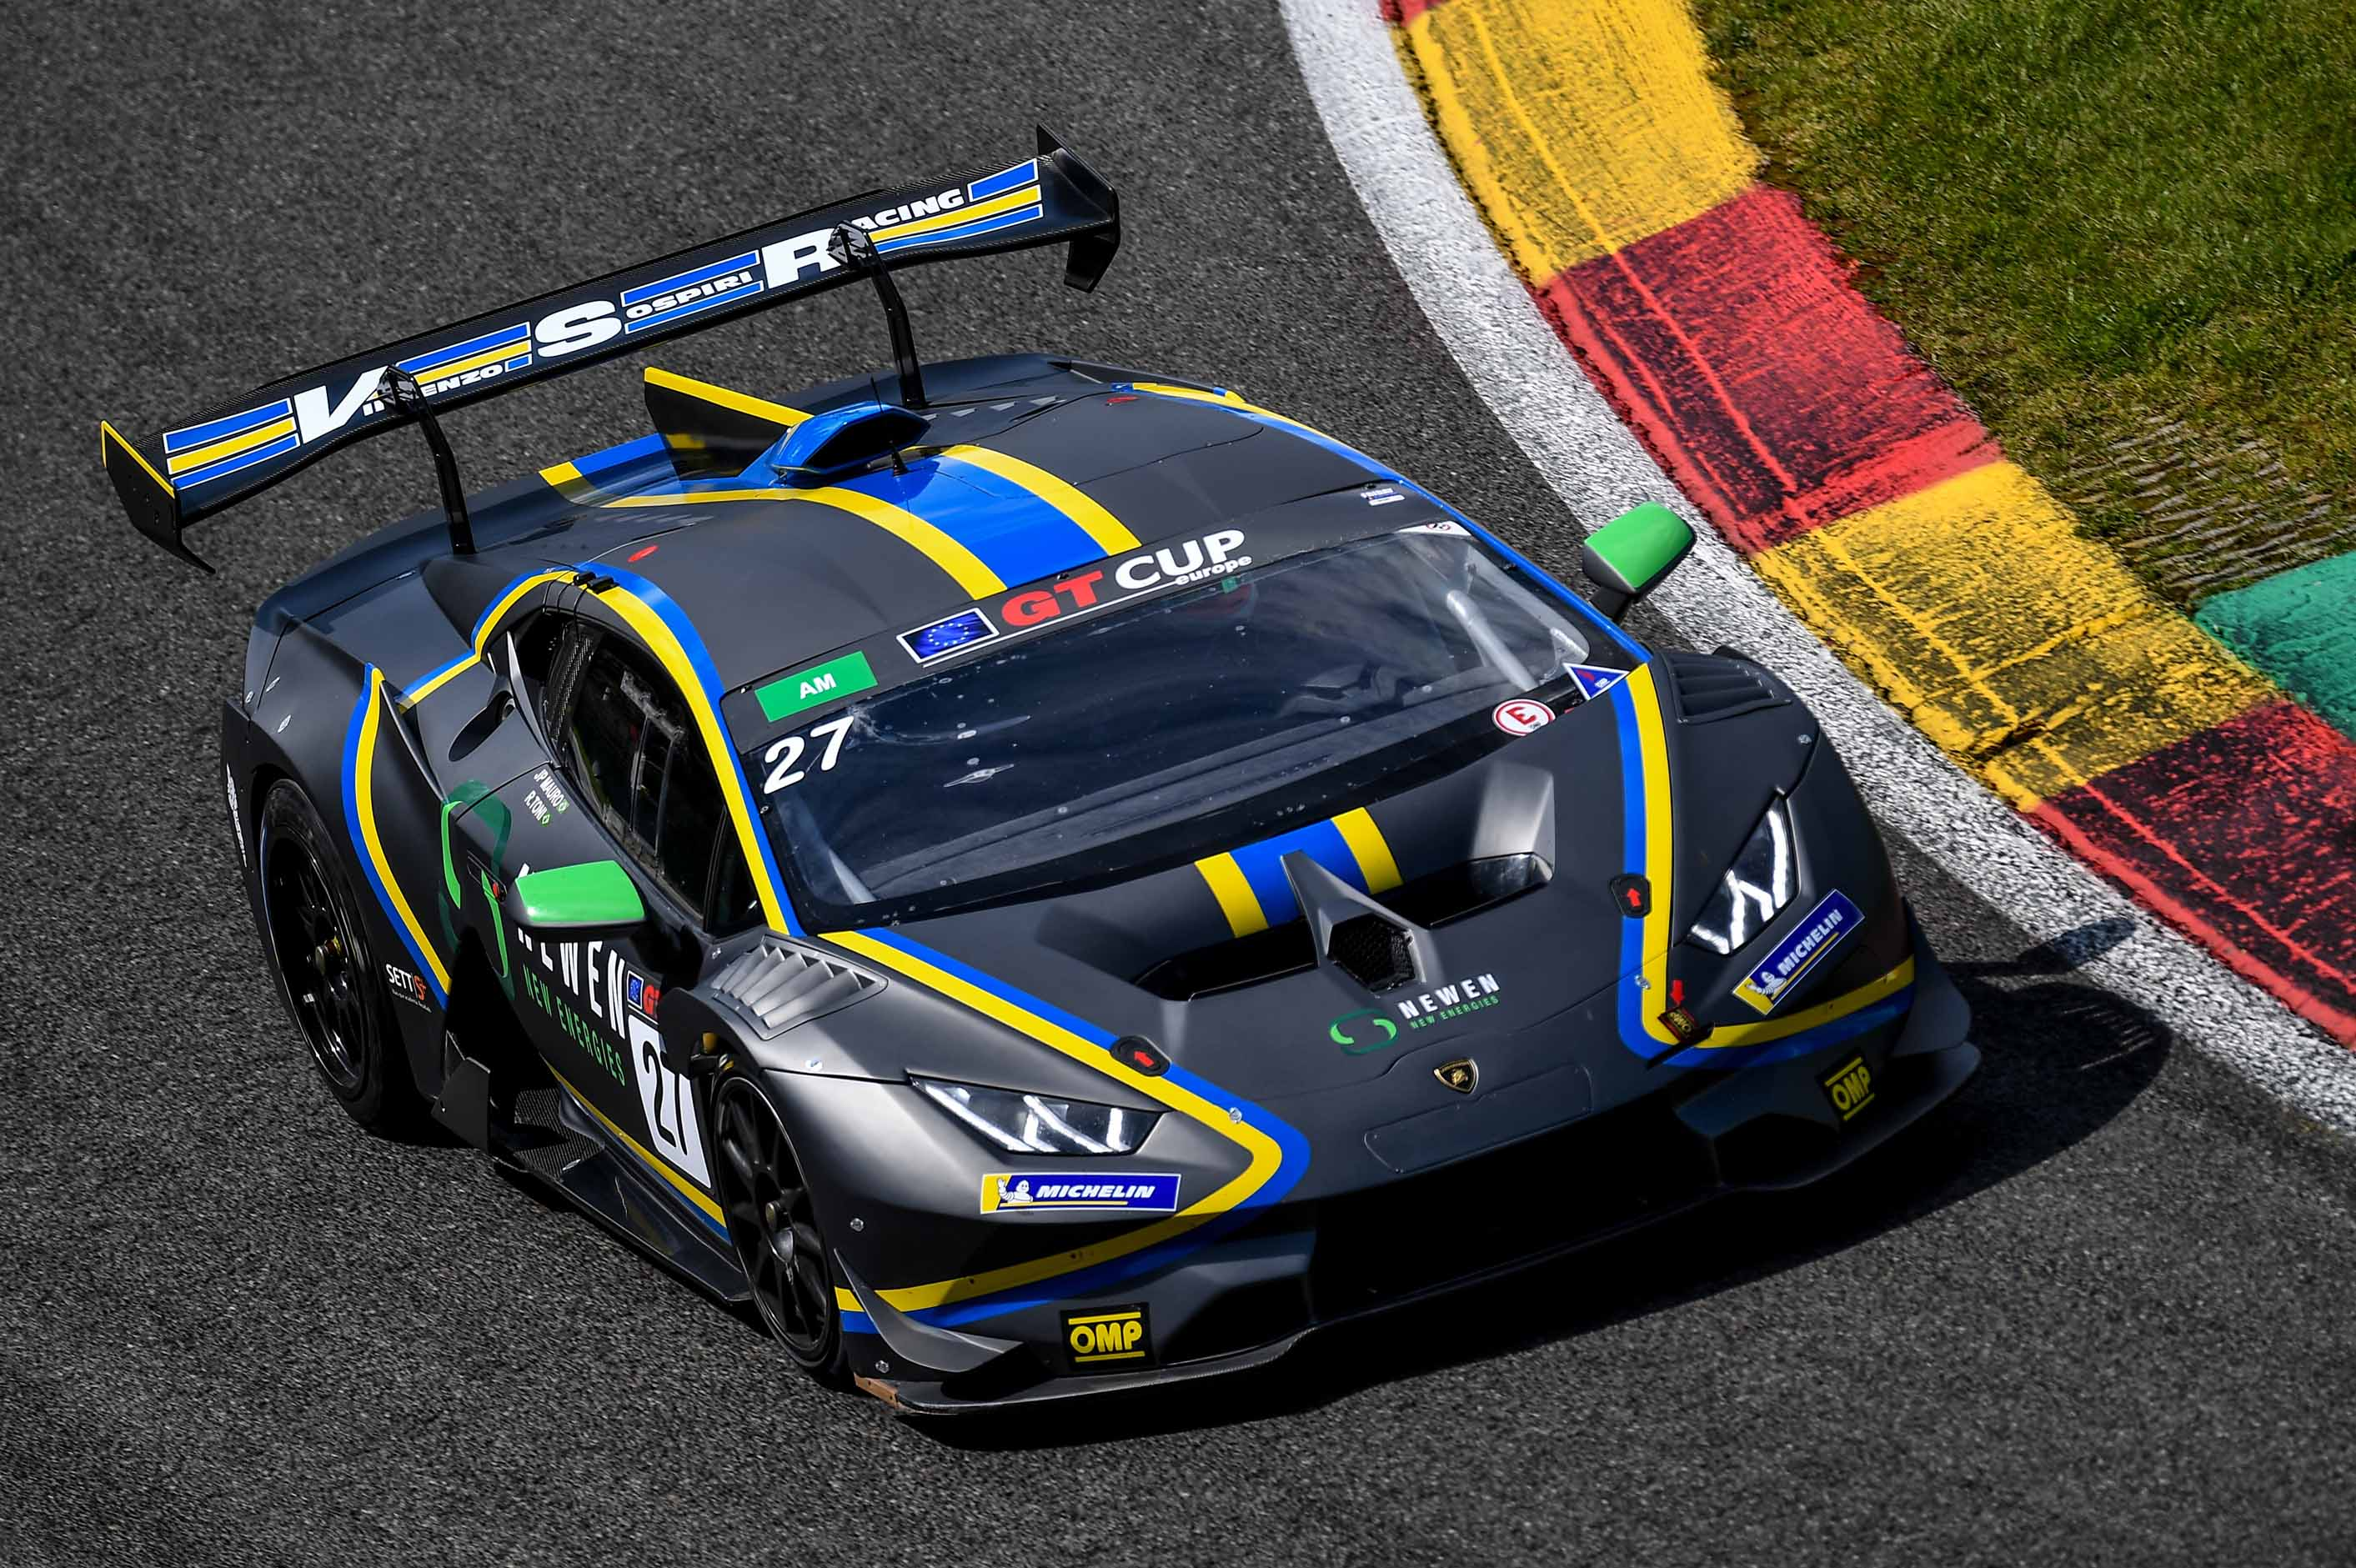 POINTS FINISHES FOR MAURO AND TONI IN SPA DEBUT